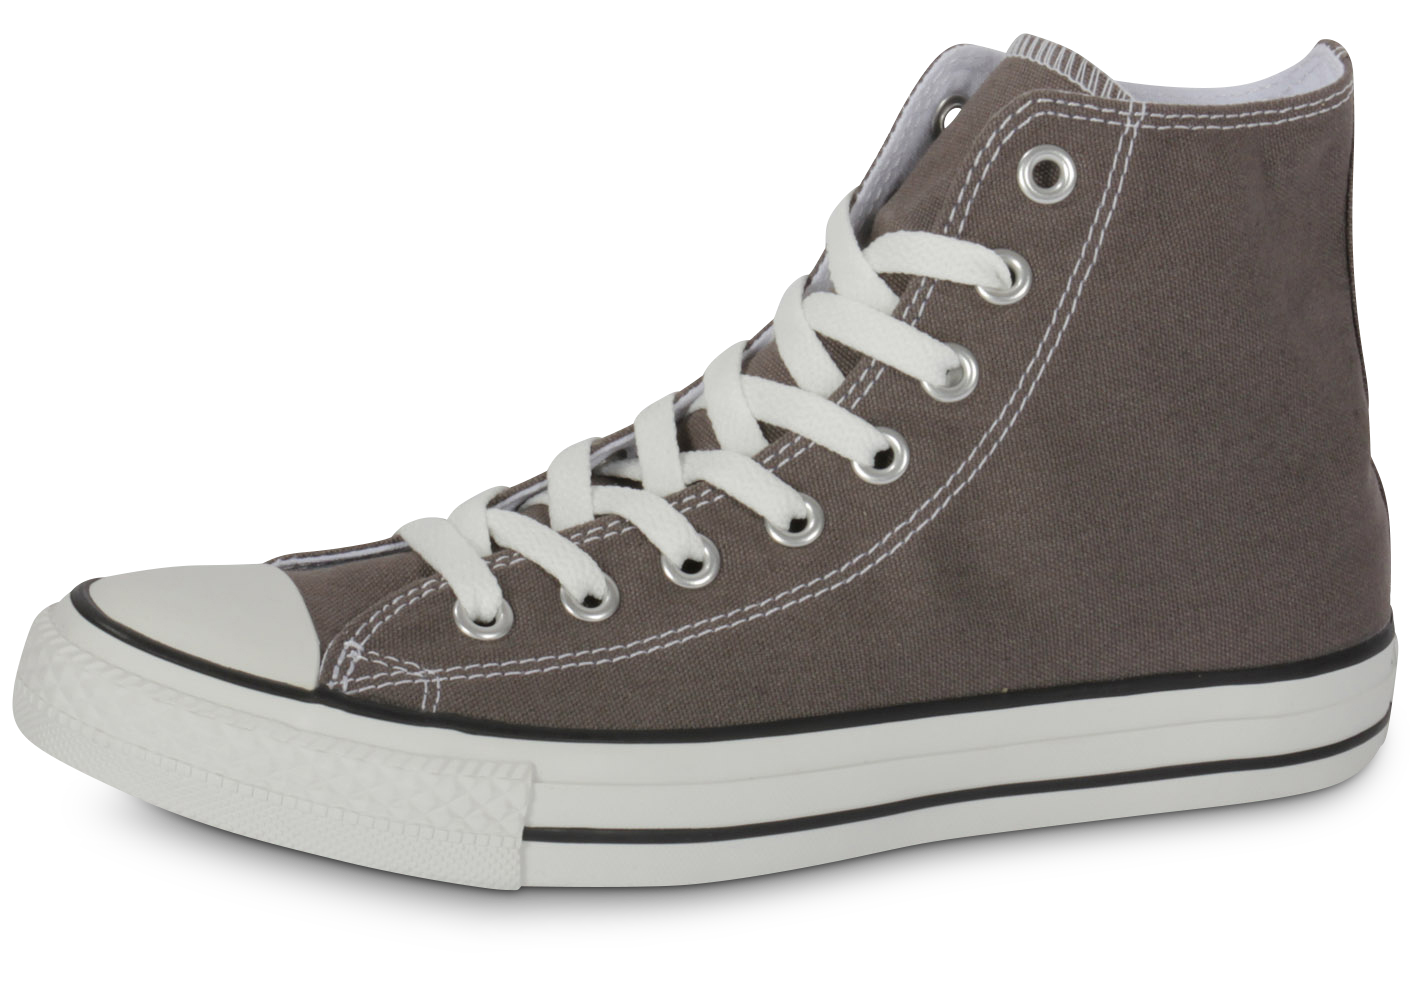 CONVERSE Baskets Montantes All Star Chaussures Mixte - Gris n1Oby9U